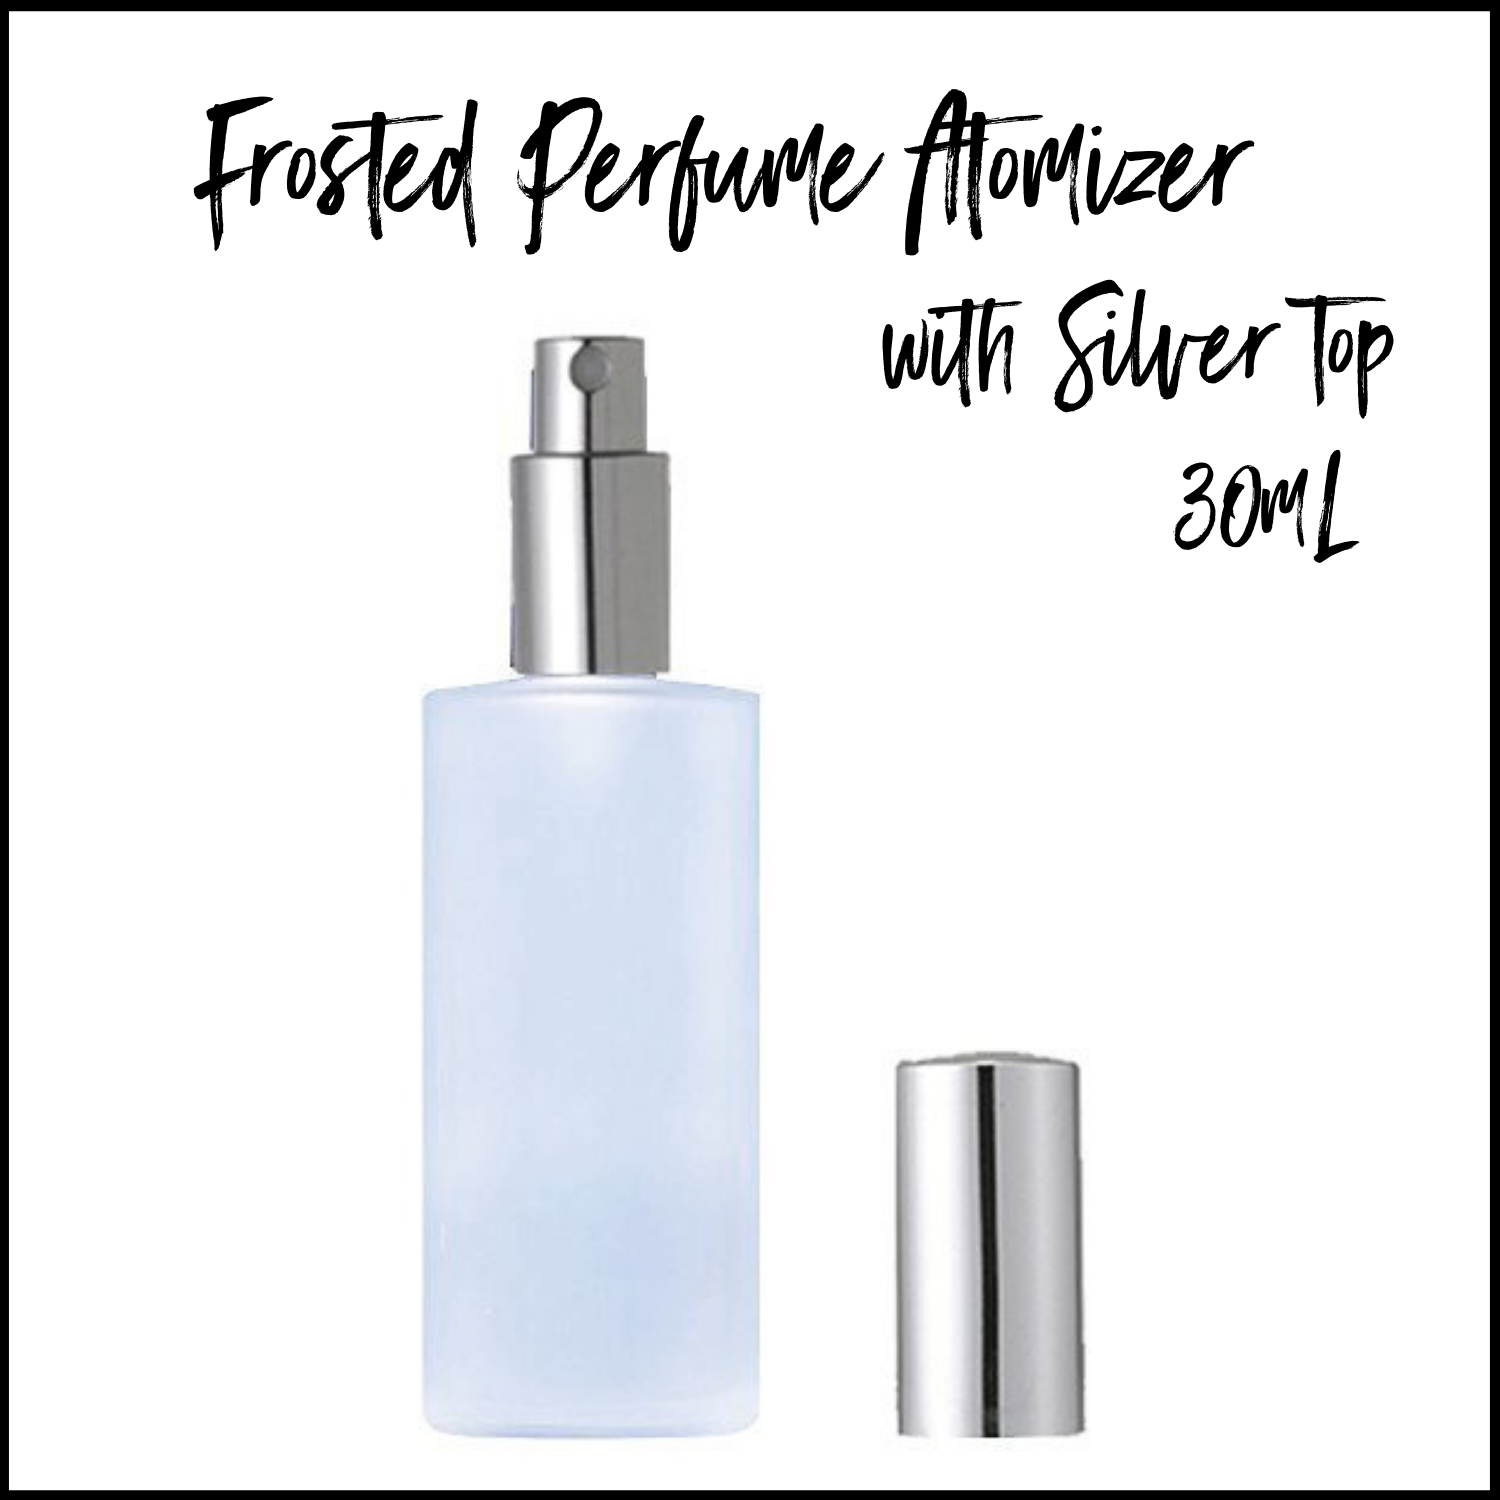 120mL Frosted Glass Perfume Bottle with Silver Sprayer